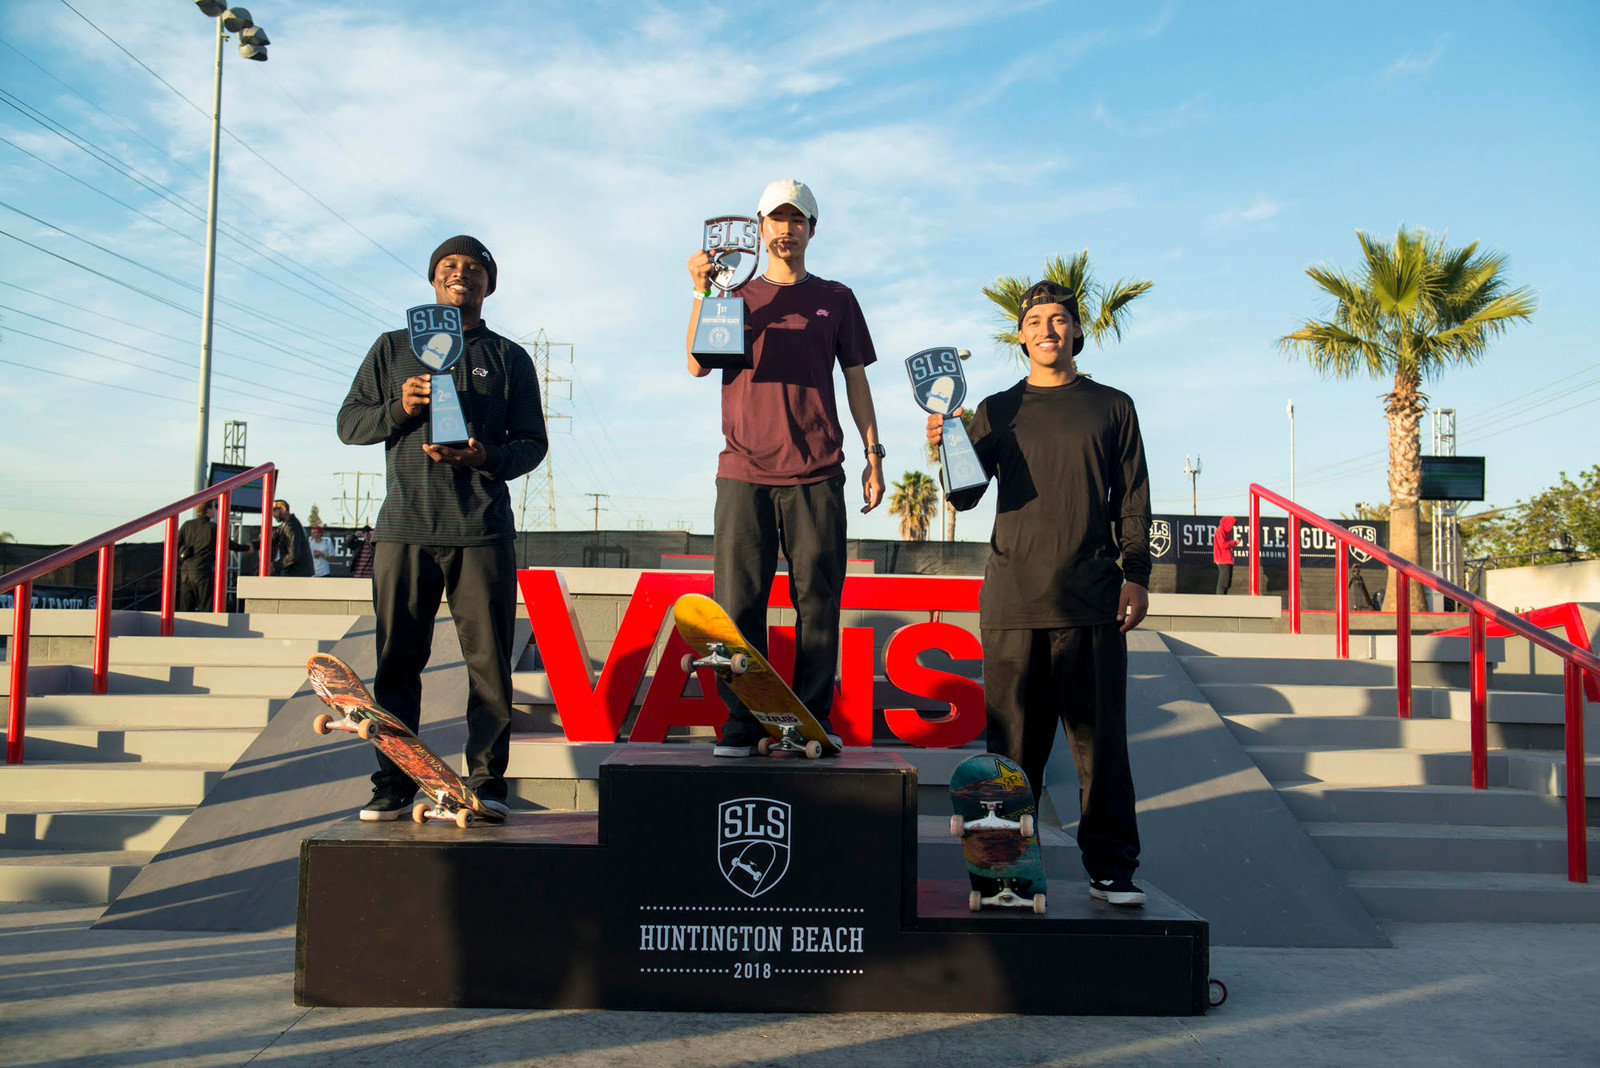 YUTO HORIGOME PULLS OFF THE STREET LEAGUE 3-PEAT